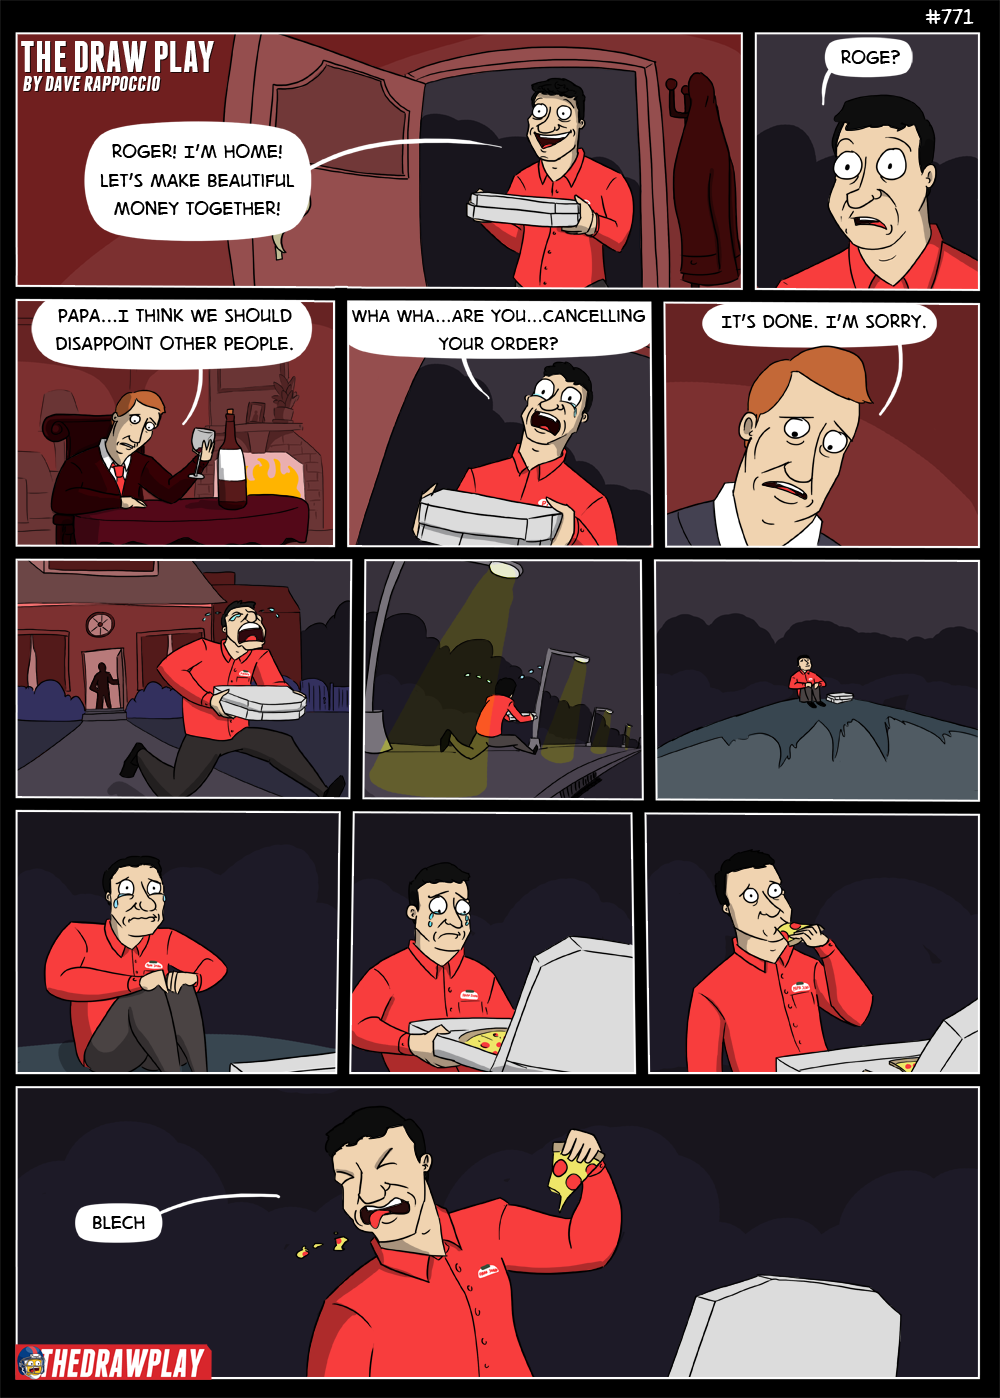 If I had started this comic later I would have changed it to be the same thing, but Goodell is making out with pizza hut box in the 3rd panel